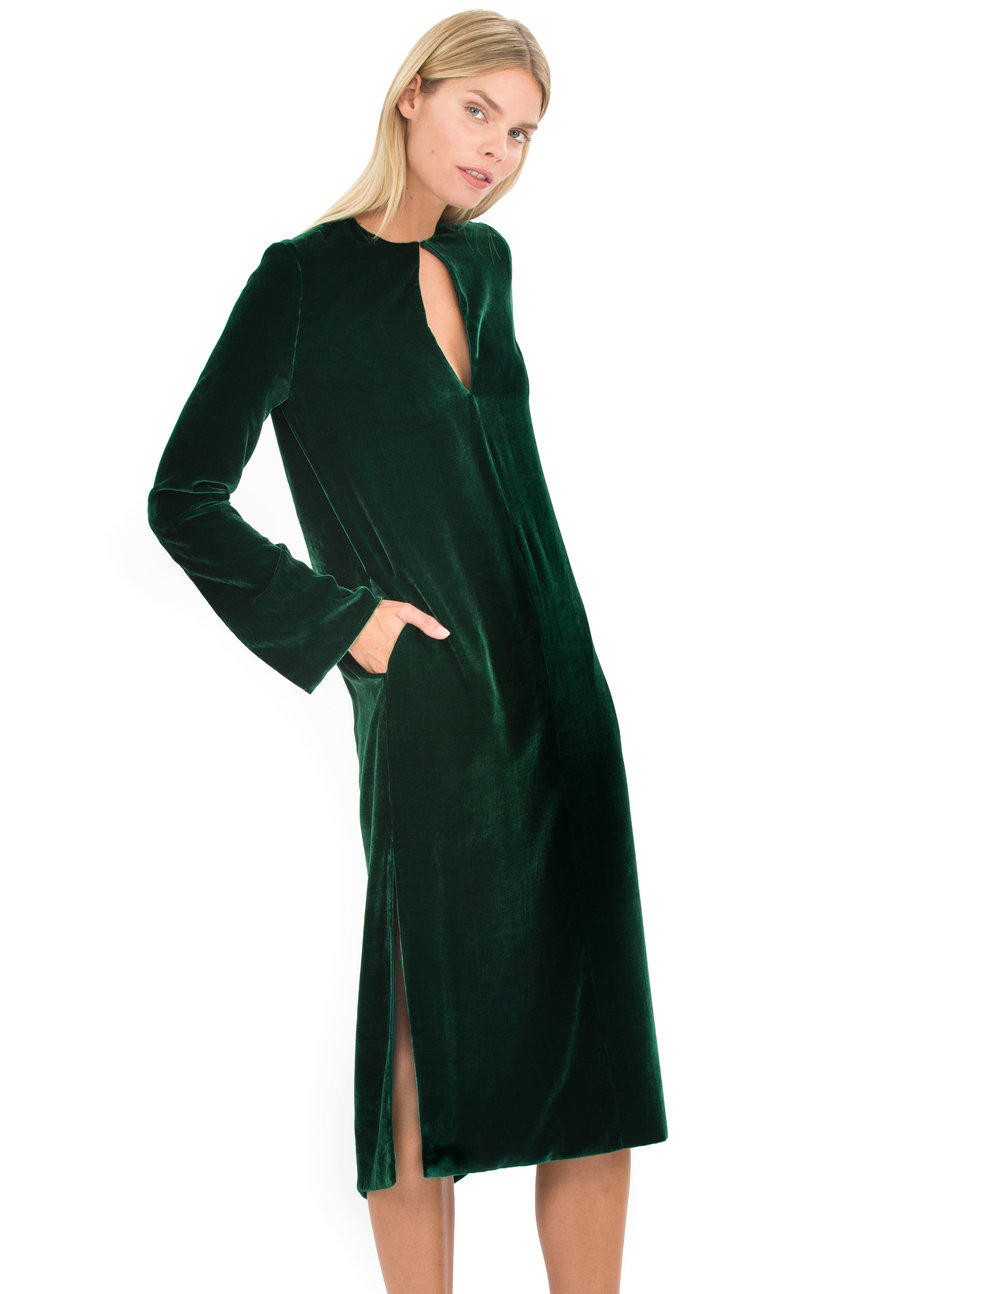 velvet-dress for web.jpg